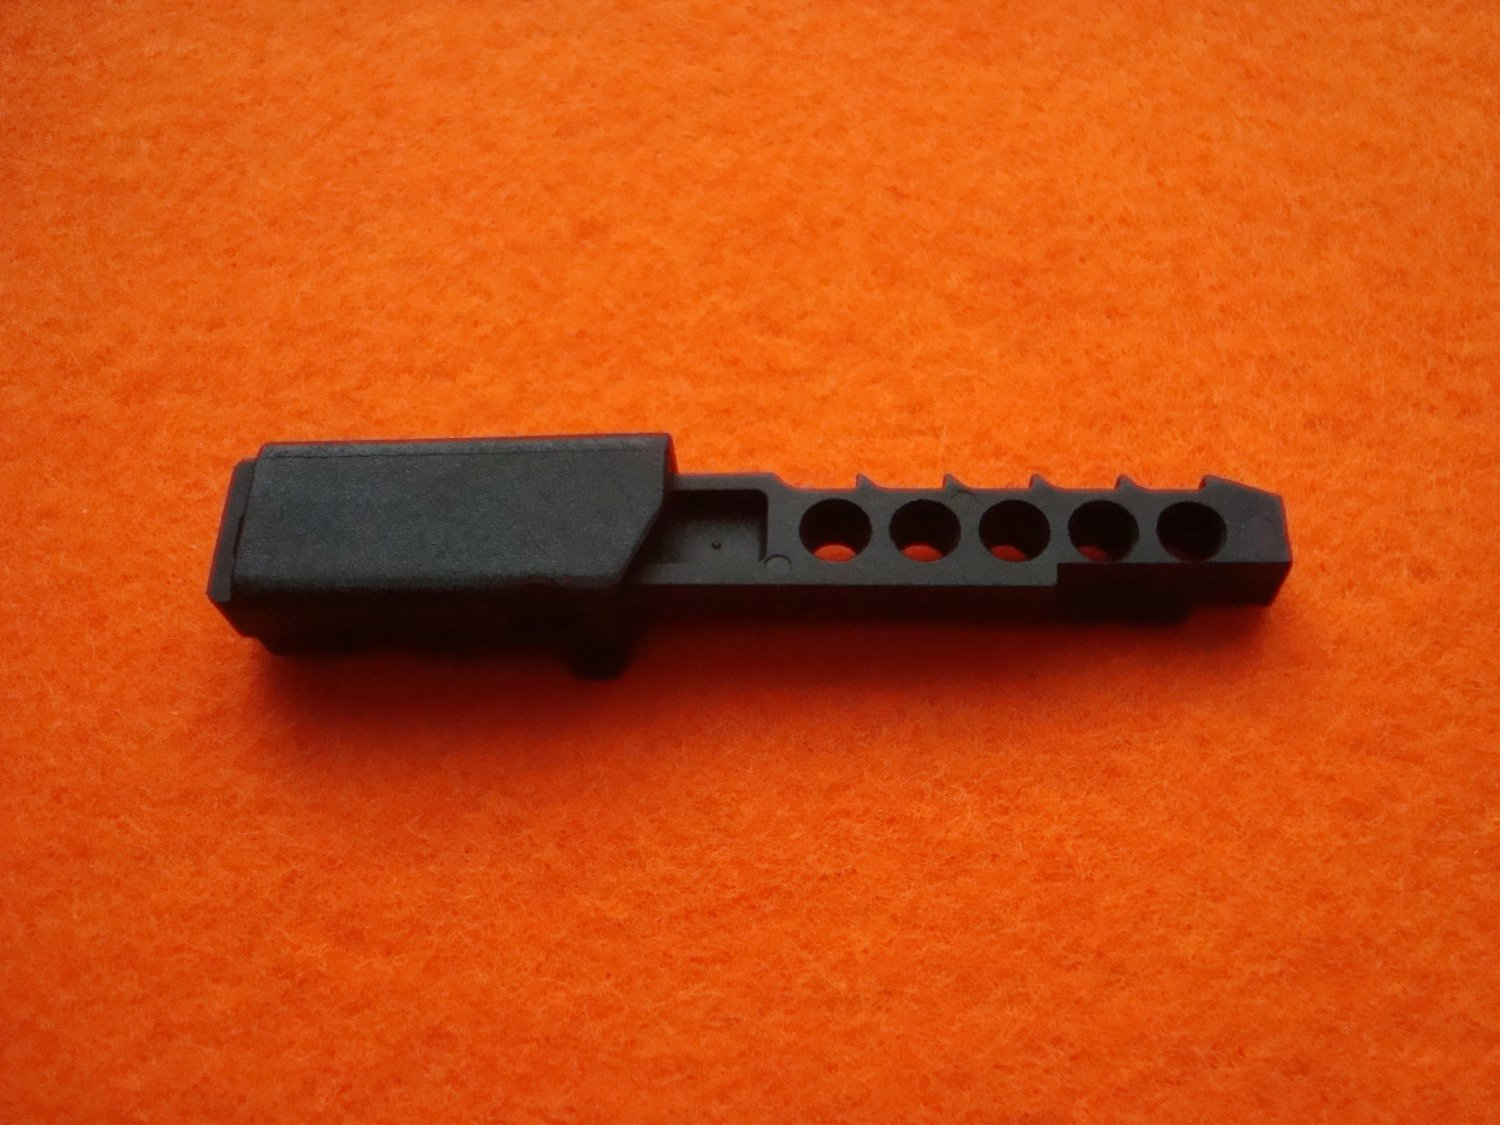 Magazine izh-61, mp-61 with fuse cover, modernized detail, have advanced design, part made to order.